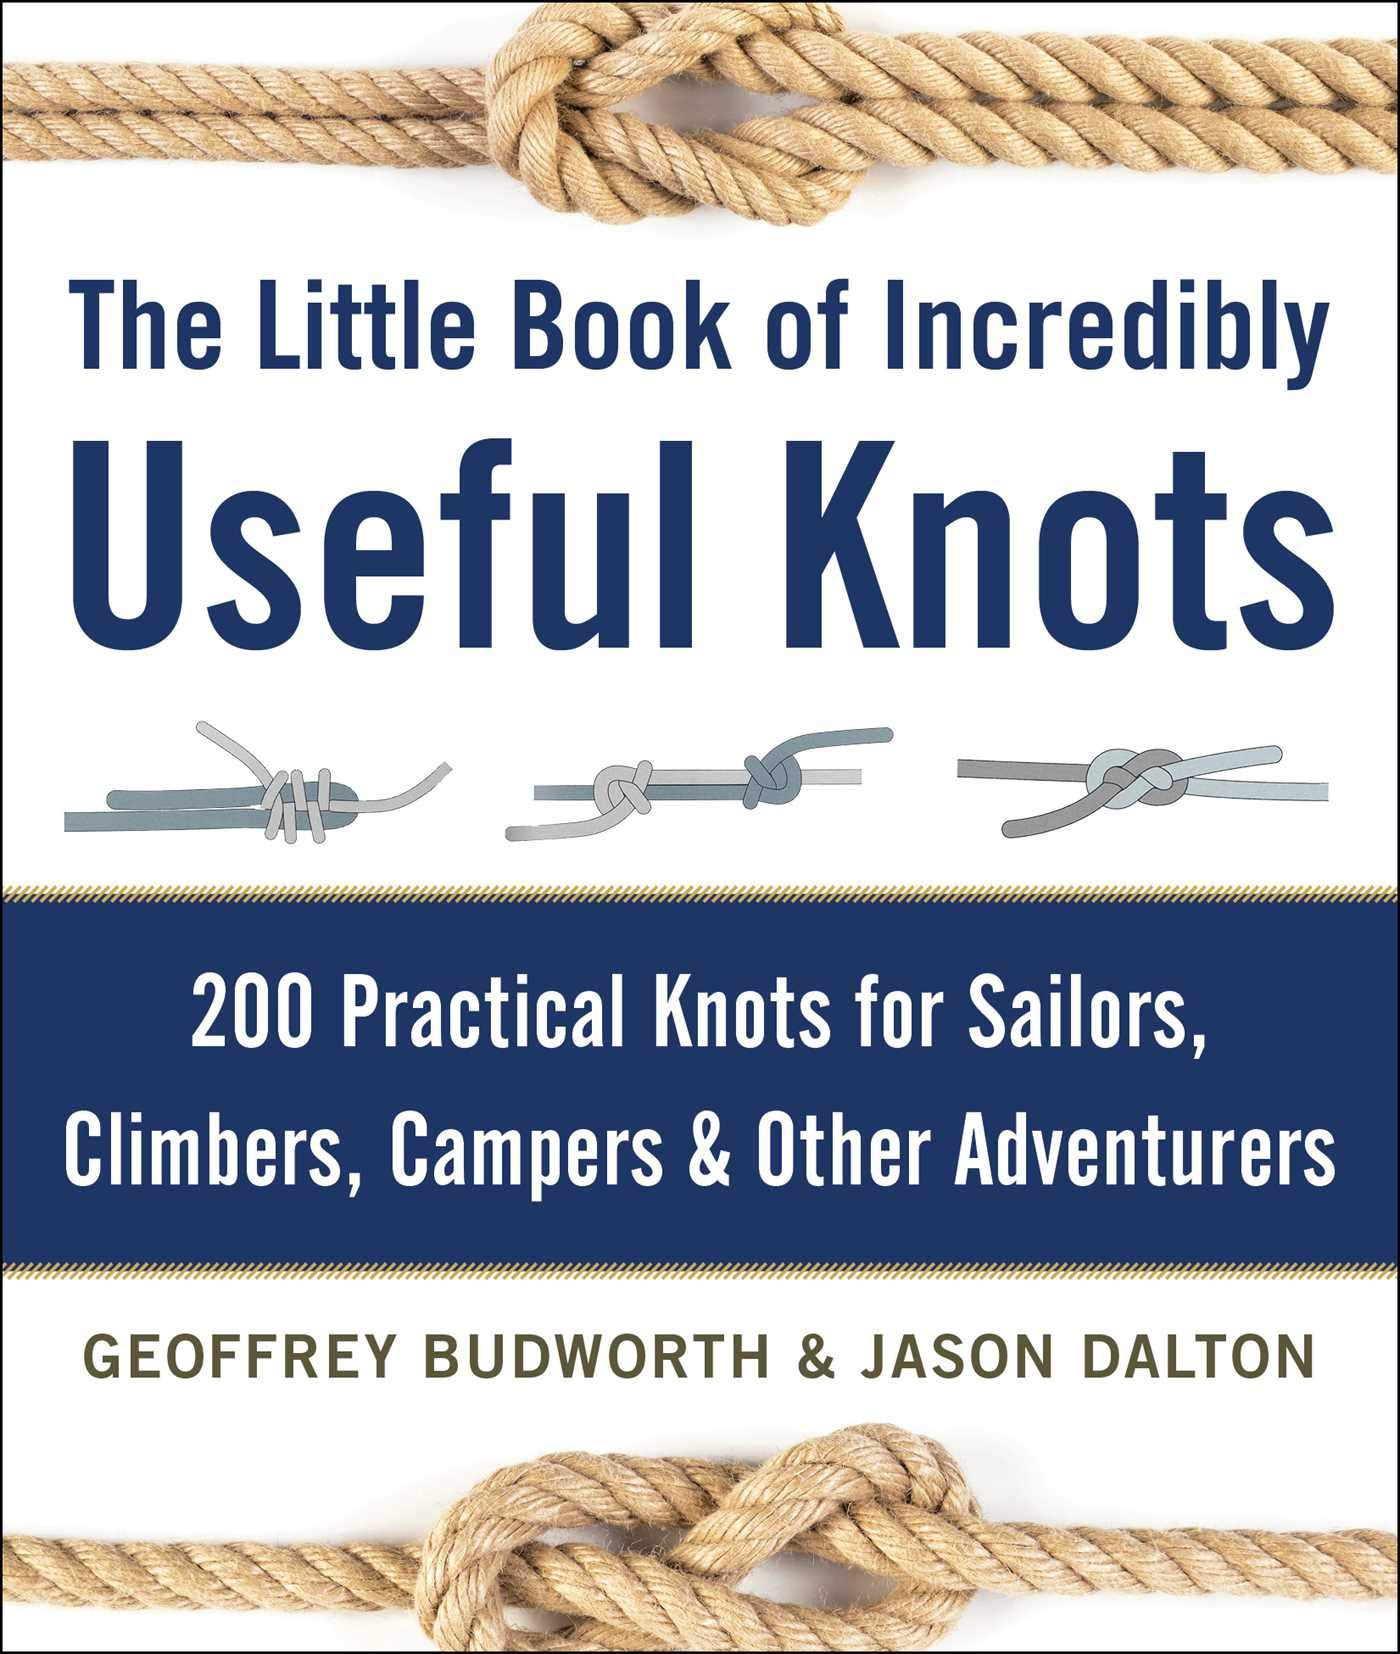 Image OfThe Little Book Of Incredibly Useful Knots: 200 Practical Knots For Sailors, Climbers, Campers & Other Adventurers